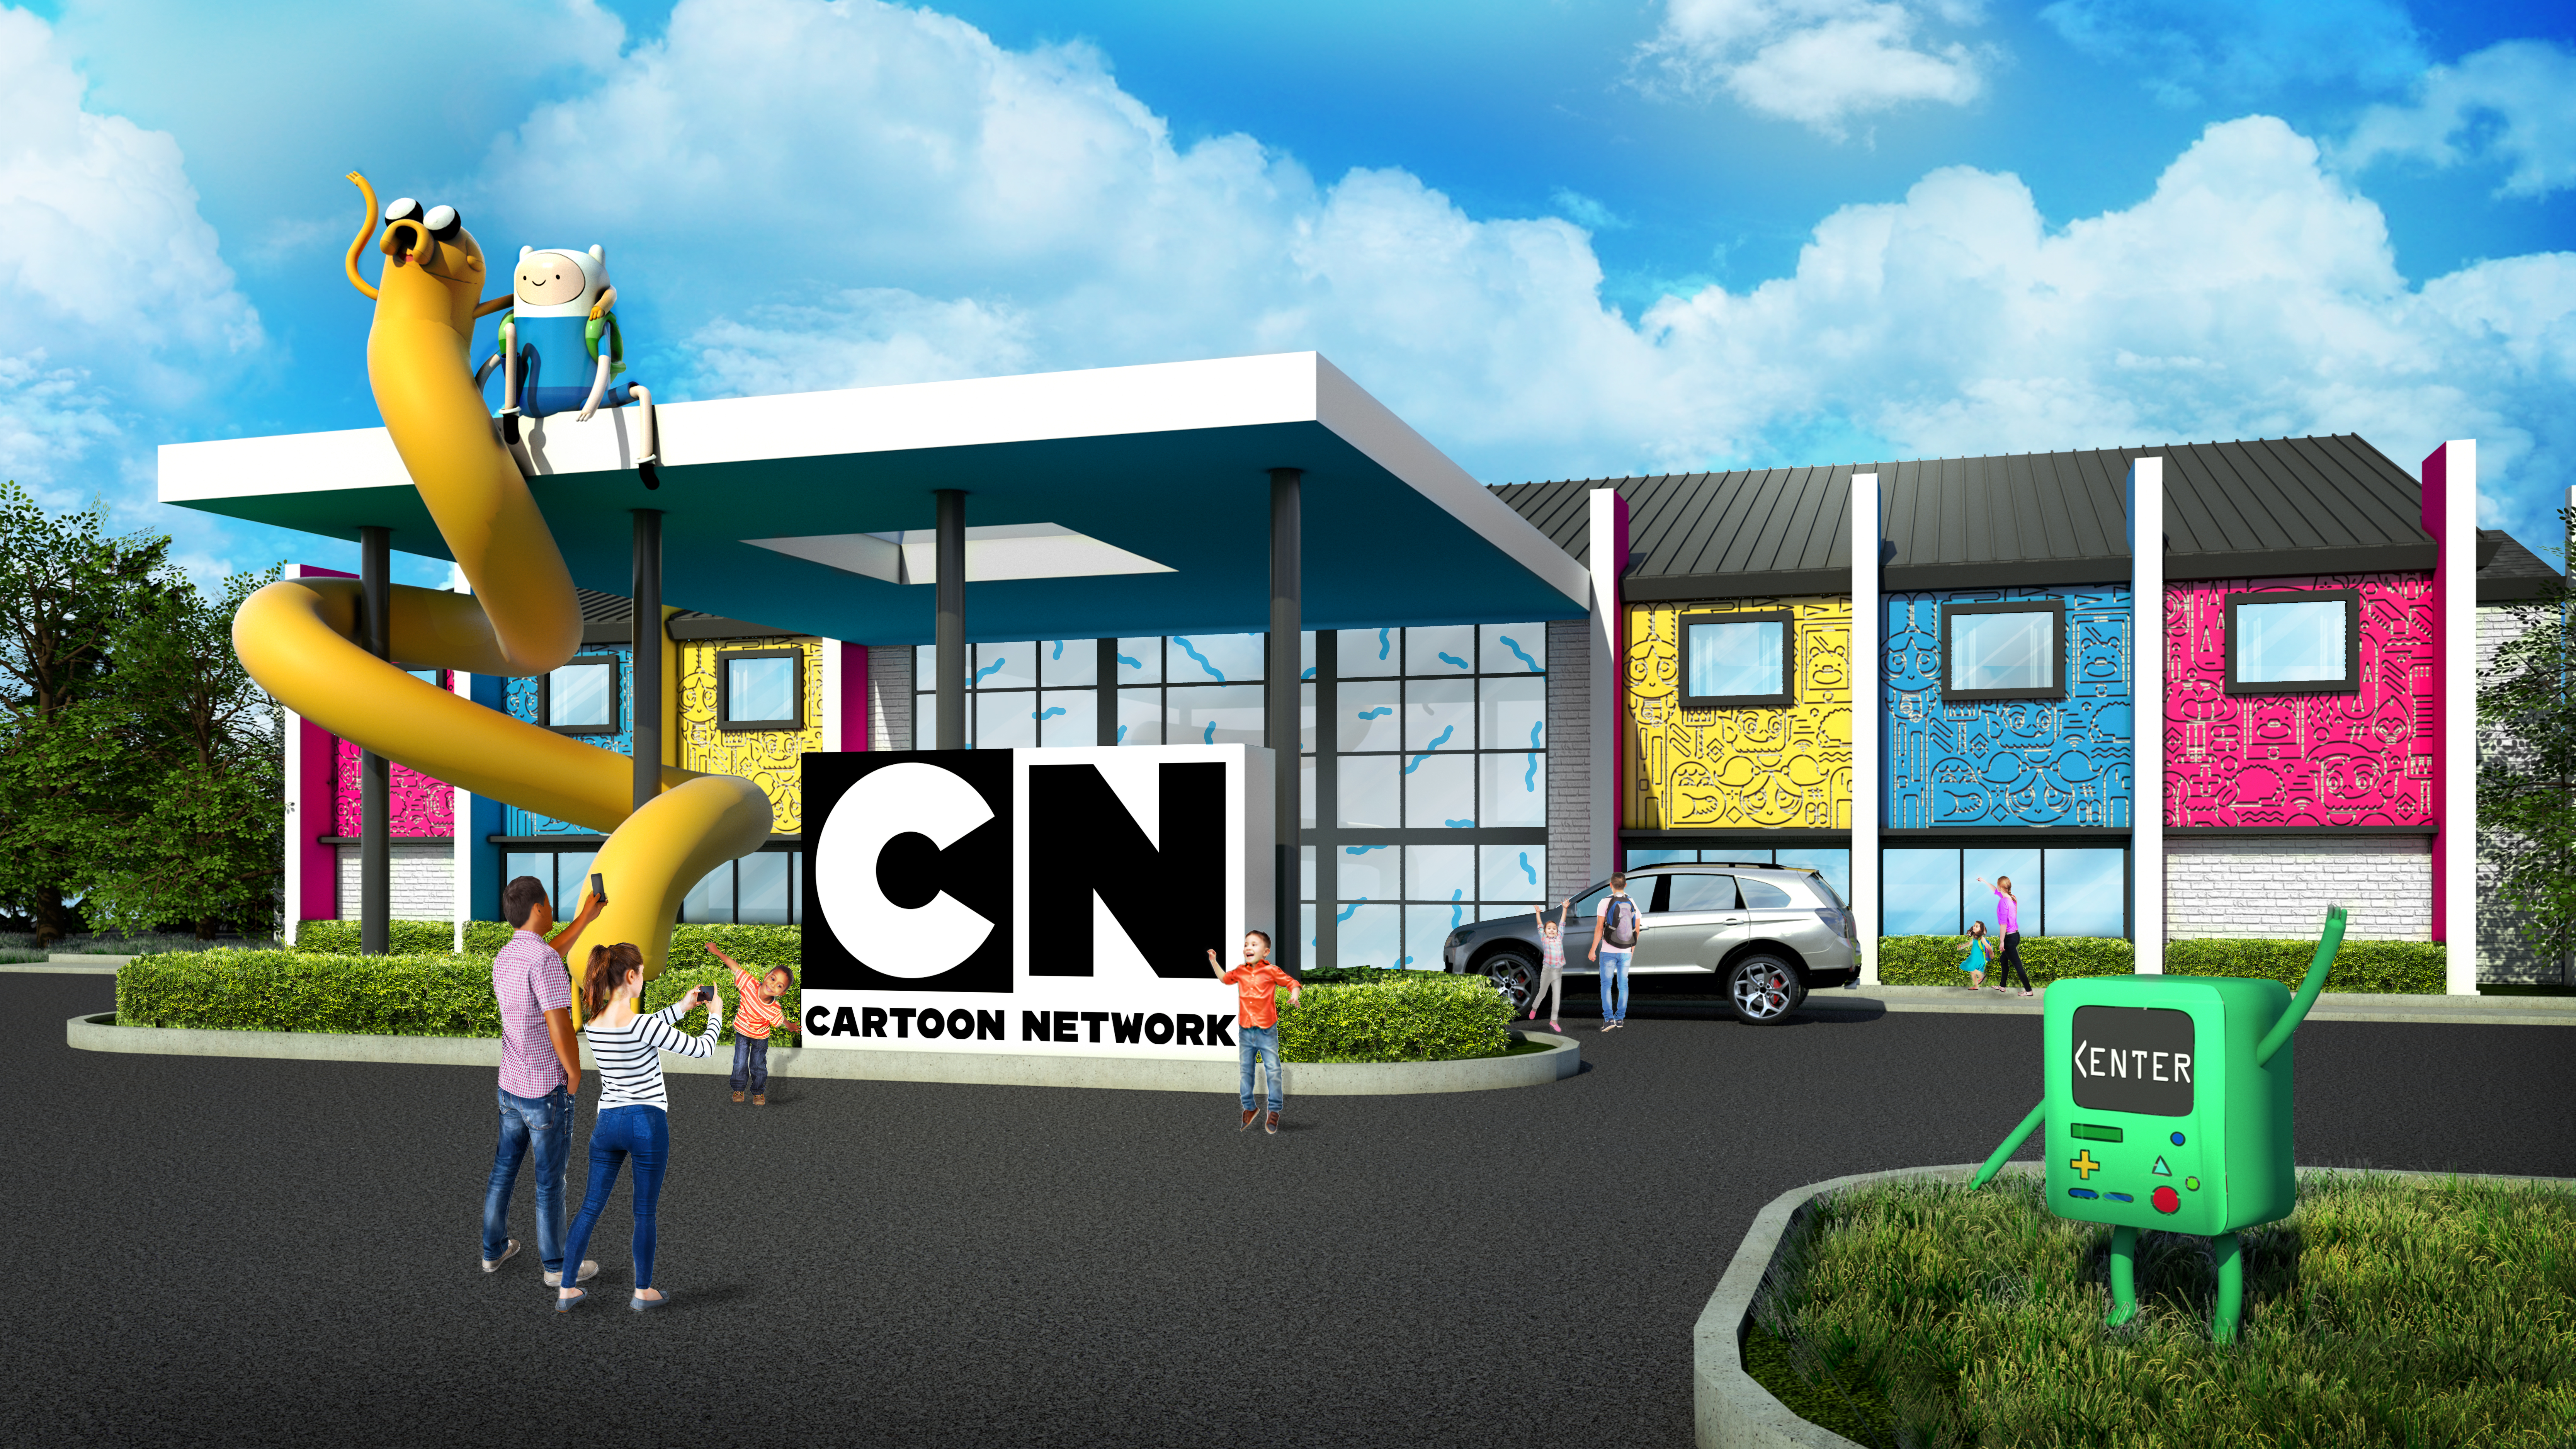 Rendering of the front of the Cartoon Network Hotel